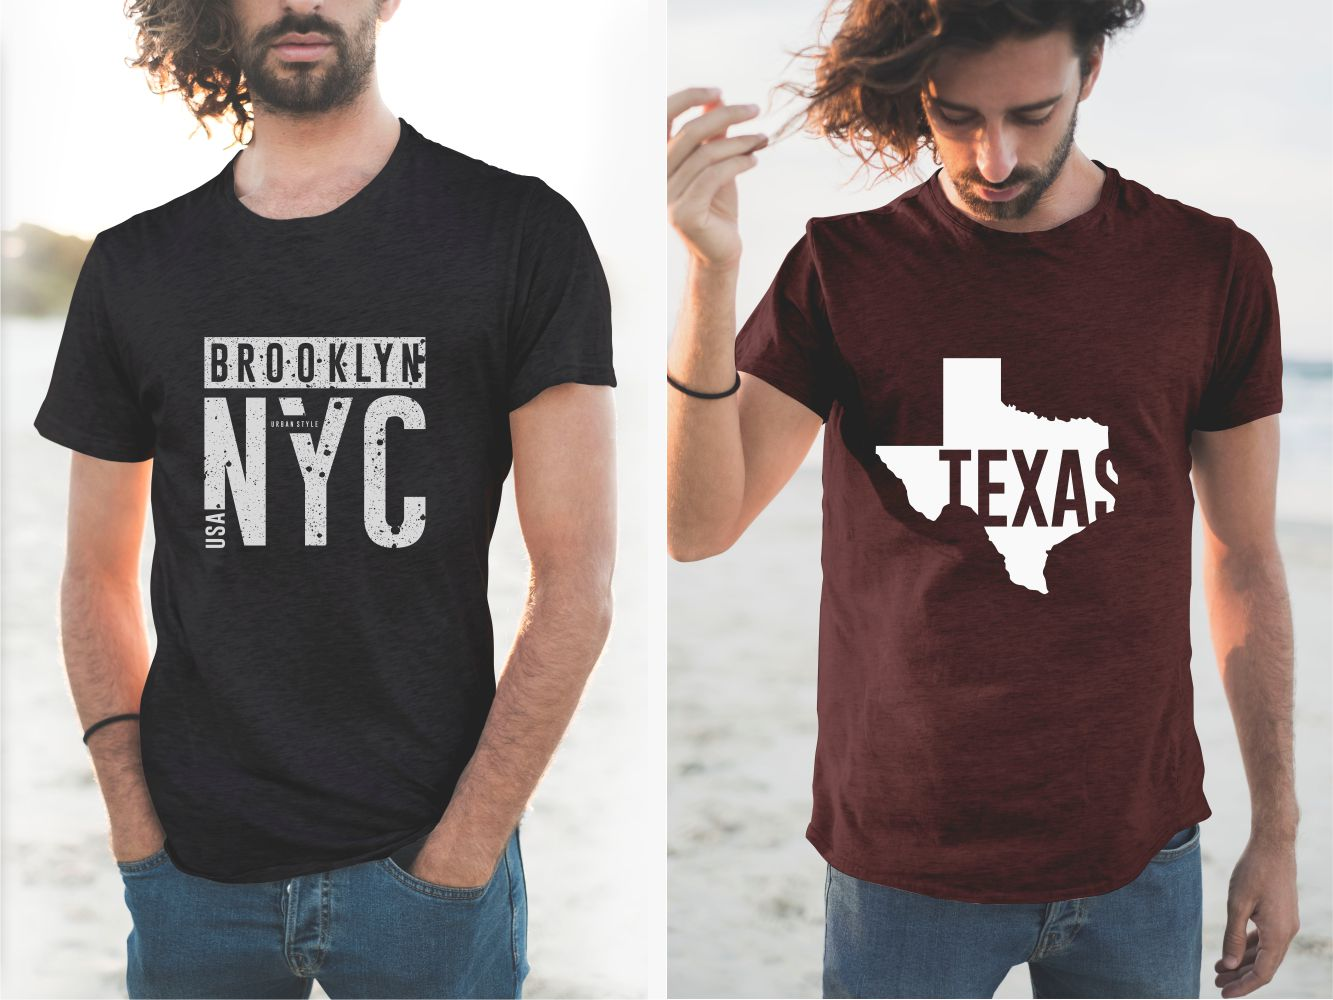 Stylish men's T-shirts with a classic cut with a map of Texas and the name of the New York borough.